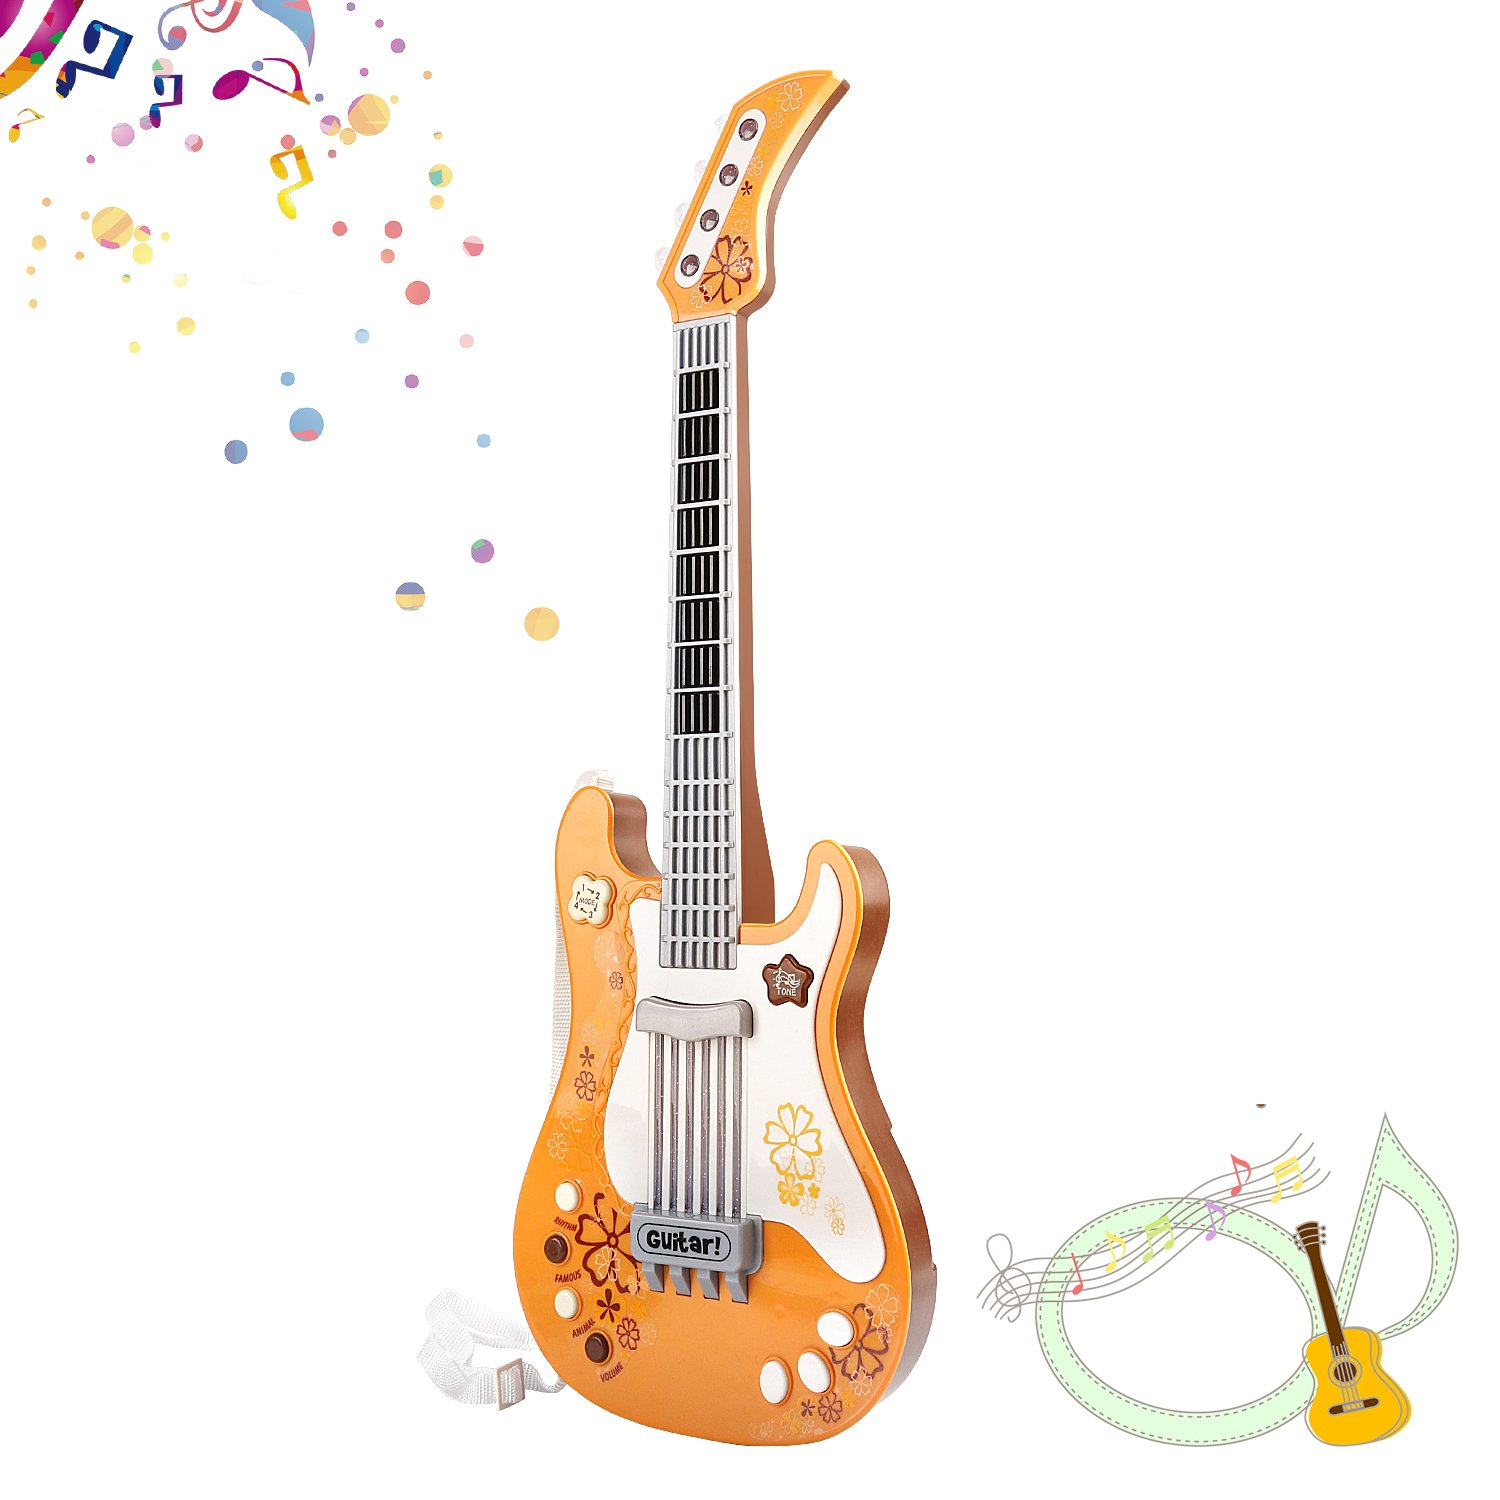 M SANMERSEN Toys Guitar for Kids, Party Favor Guitar with Vibrant Sounds Gifts for Boys Girls Age 3-6 Toys for Children Girls Boys Xmas Gifts